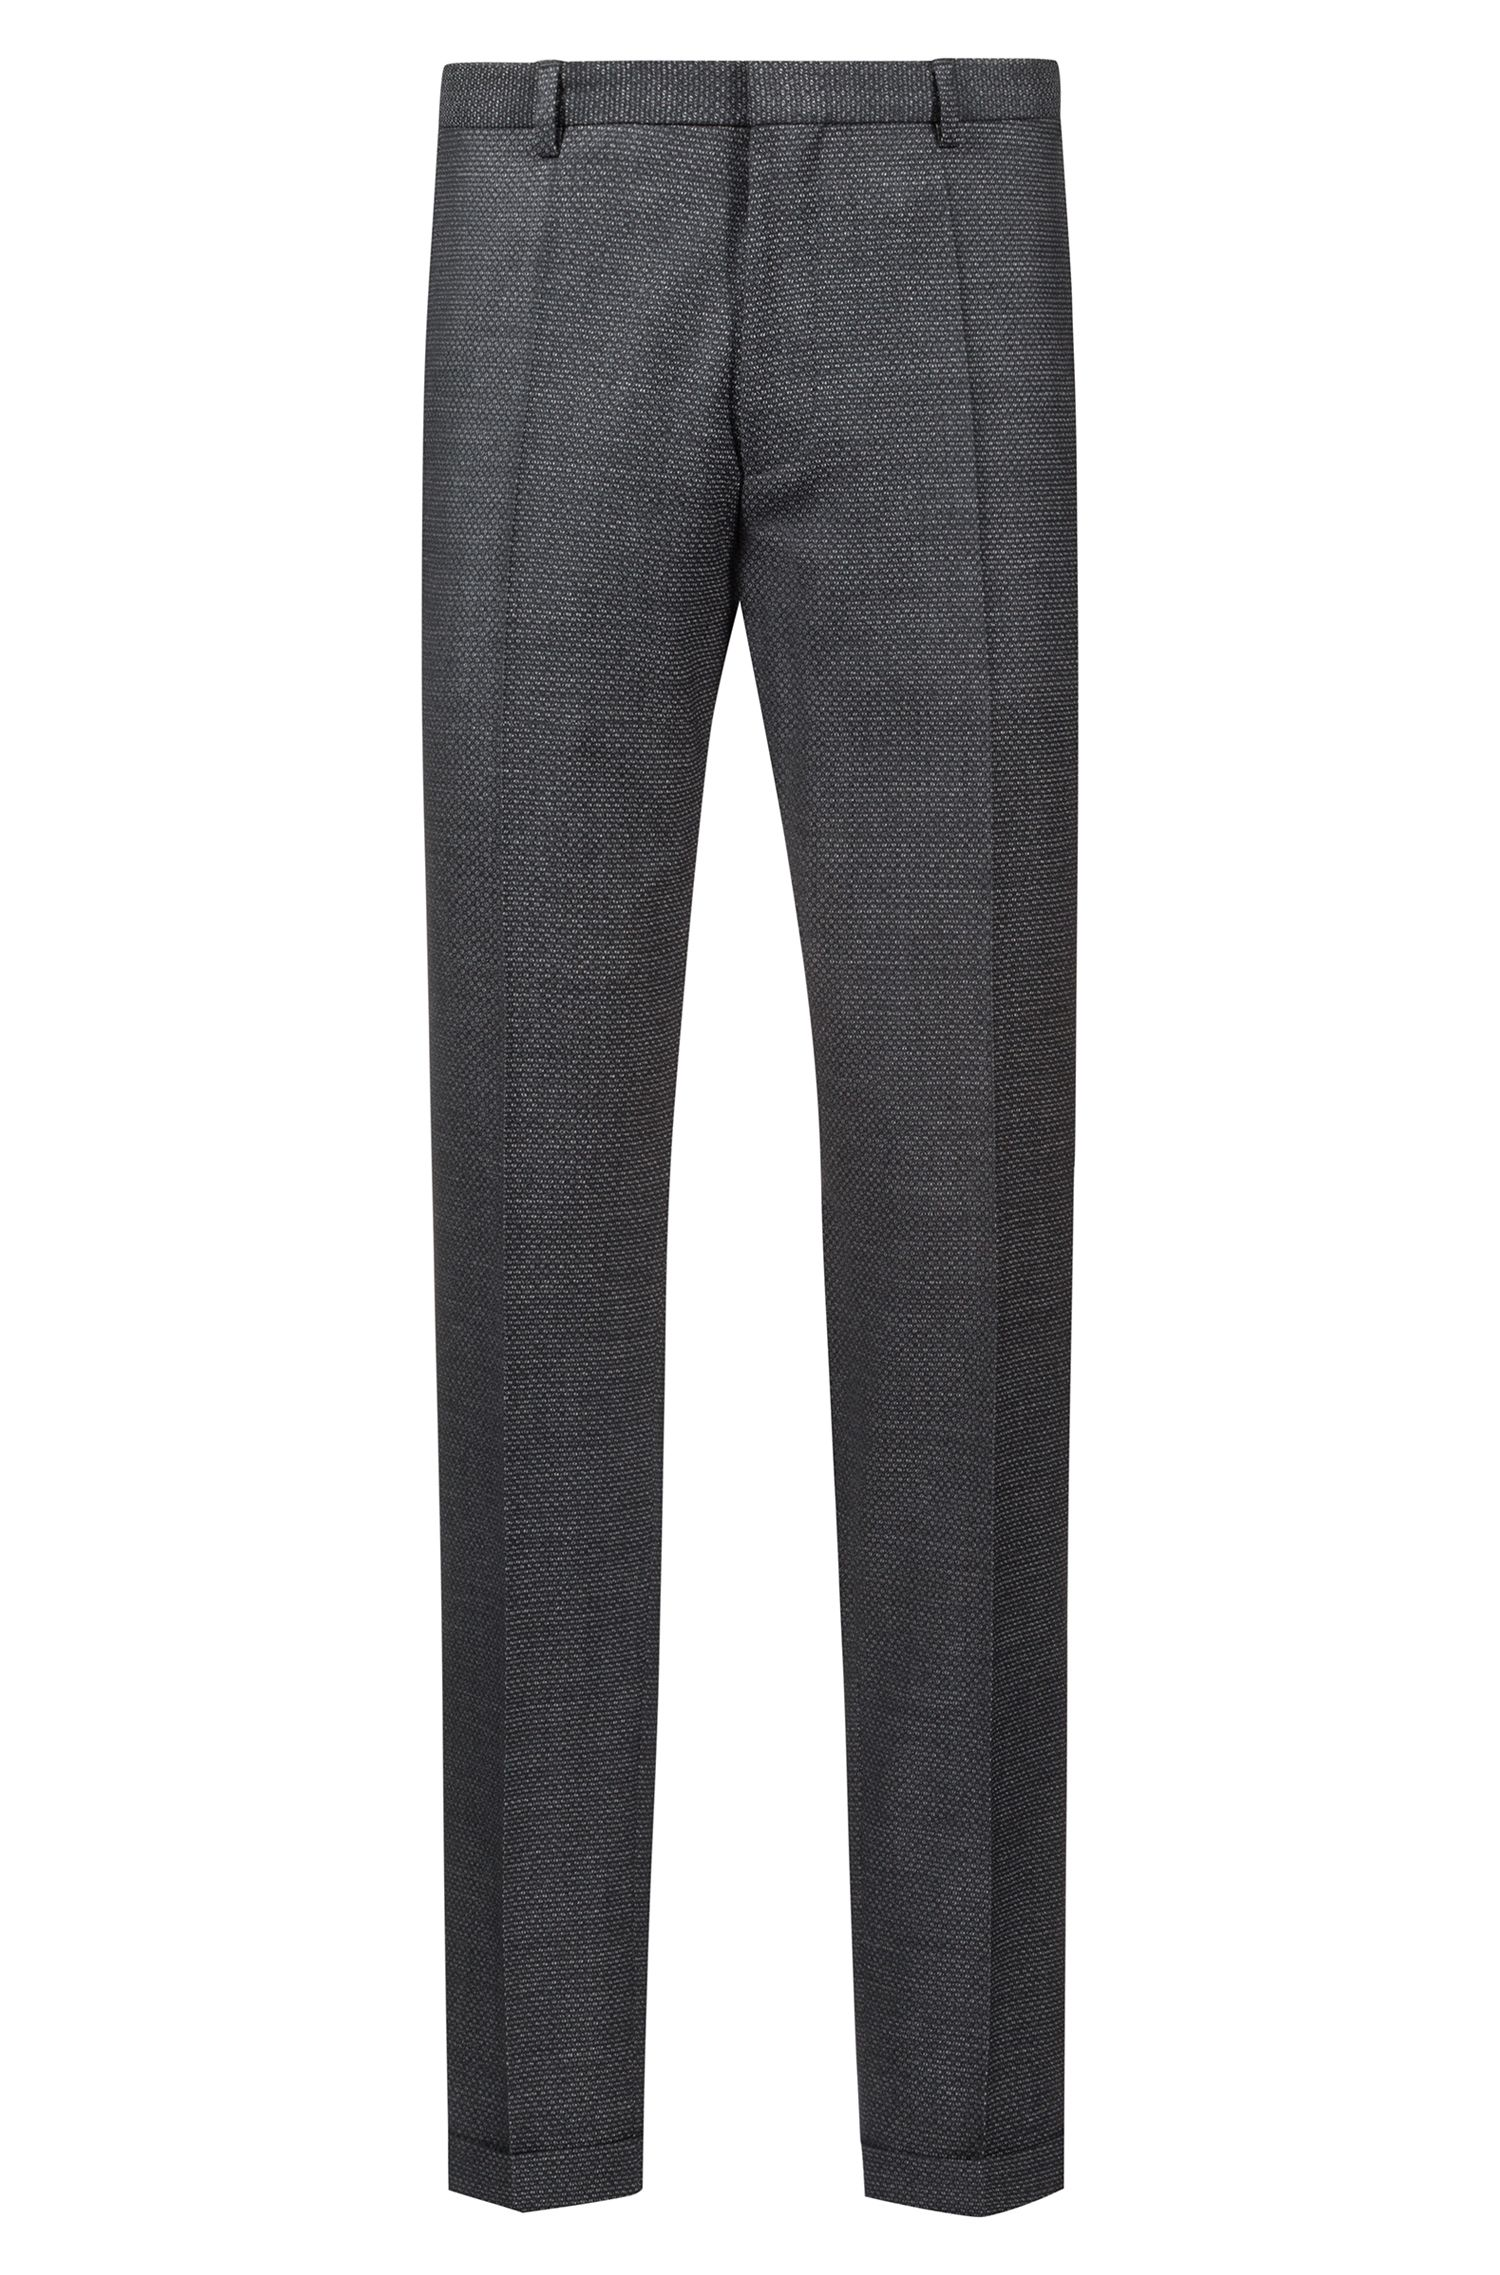 Extra-slim-fit patterned suit in virgin wool, Anthracite